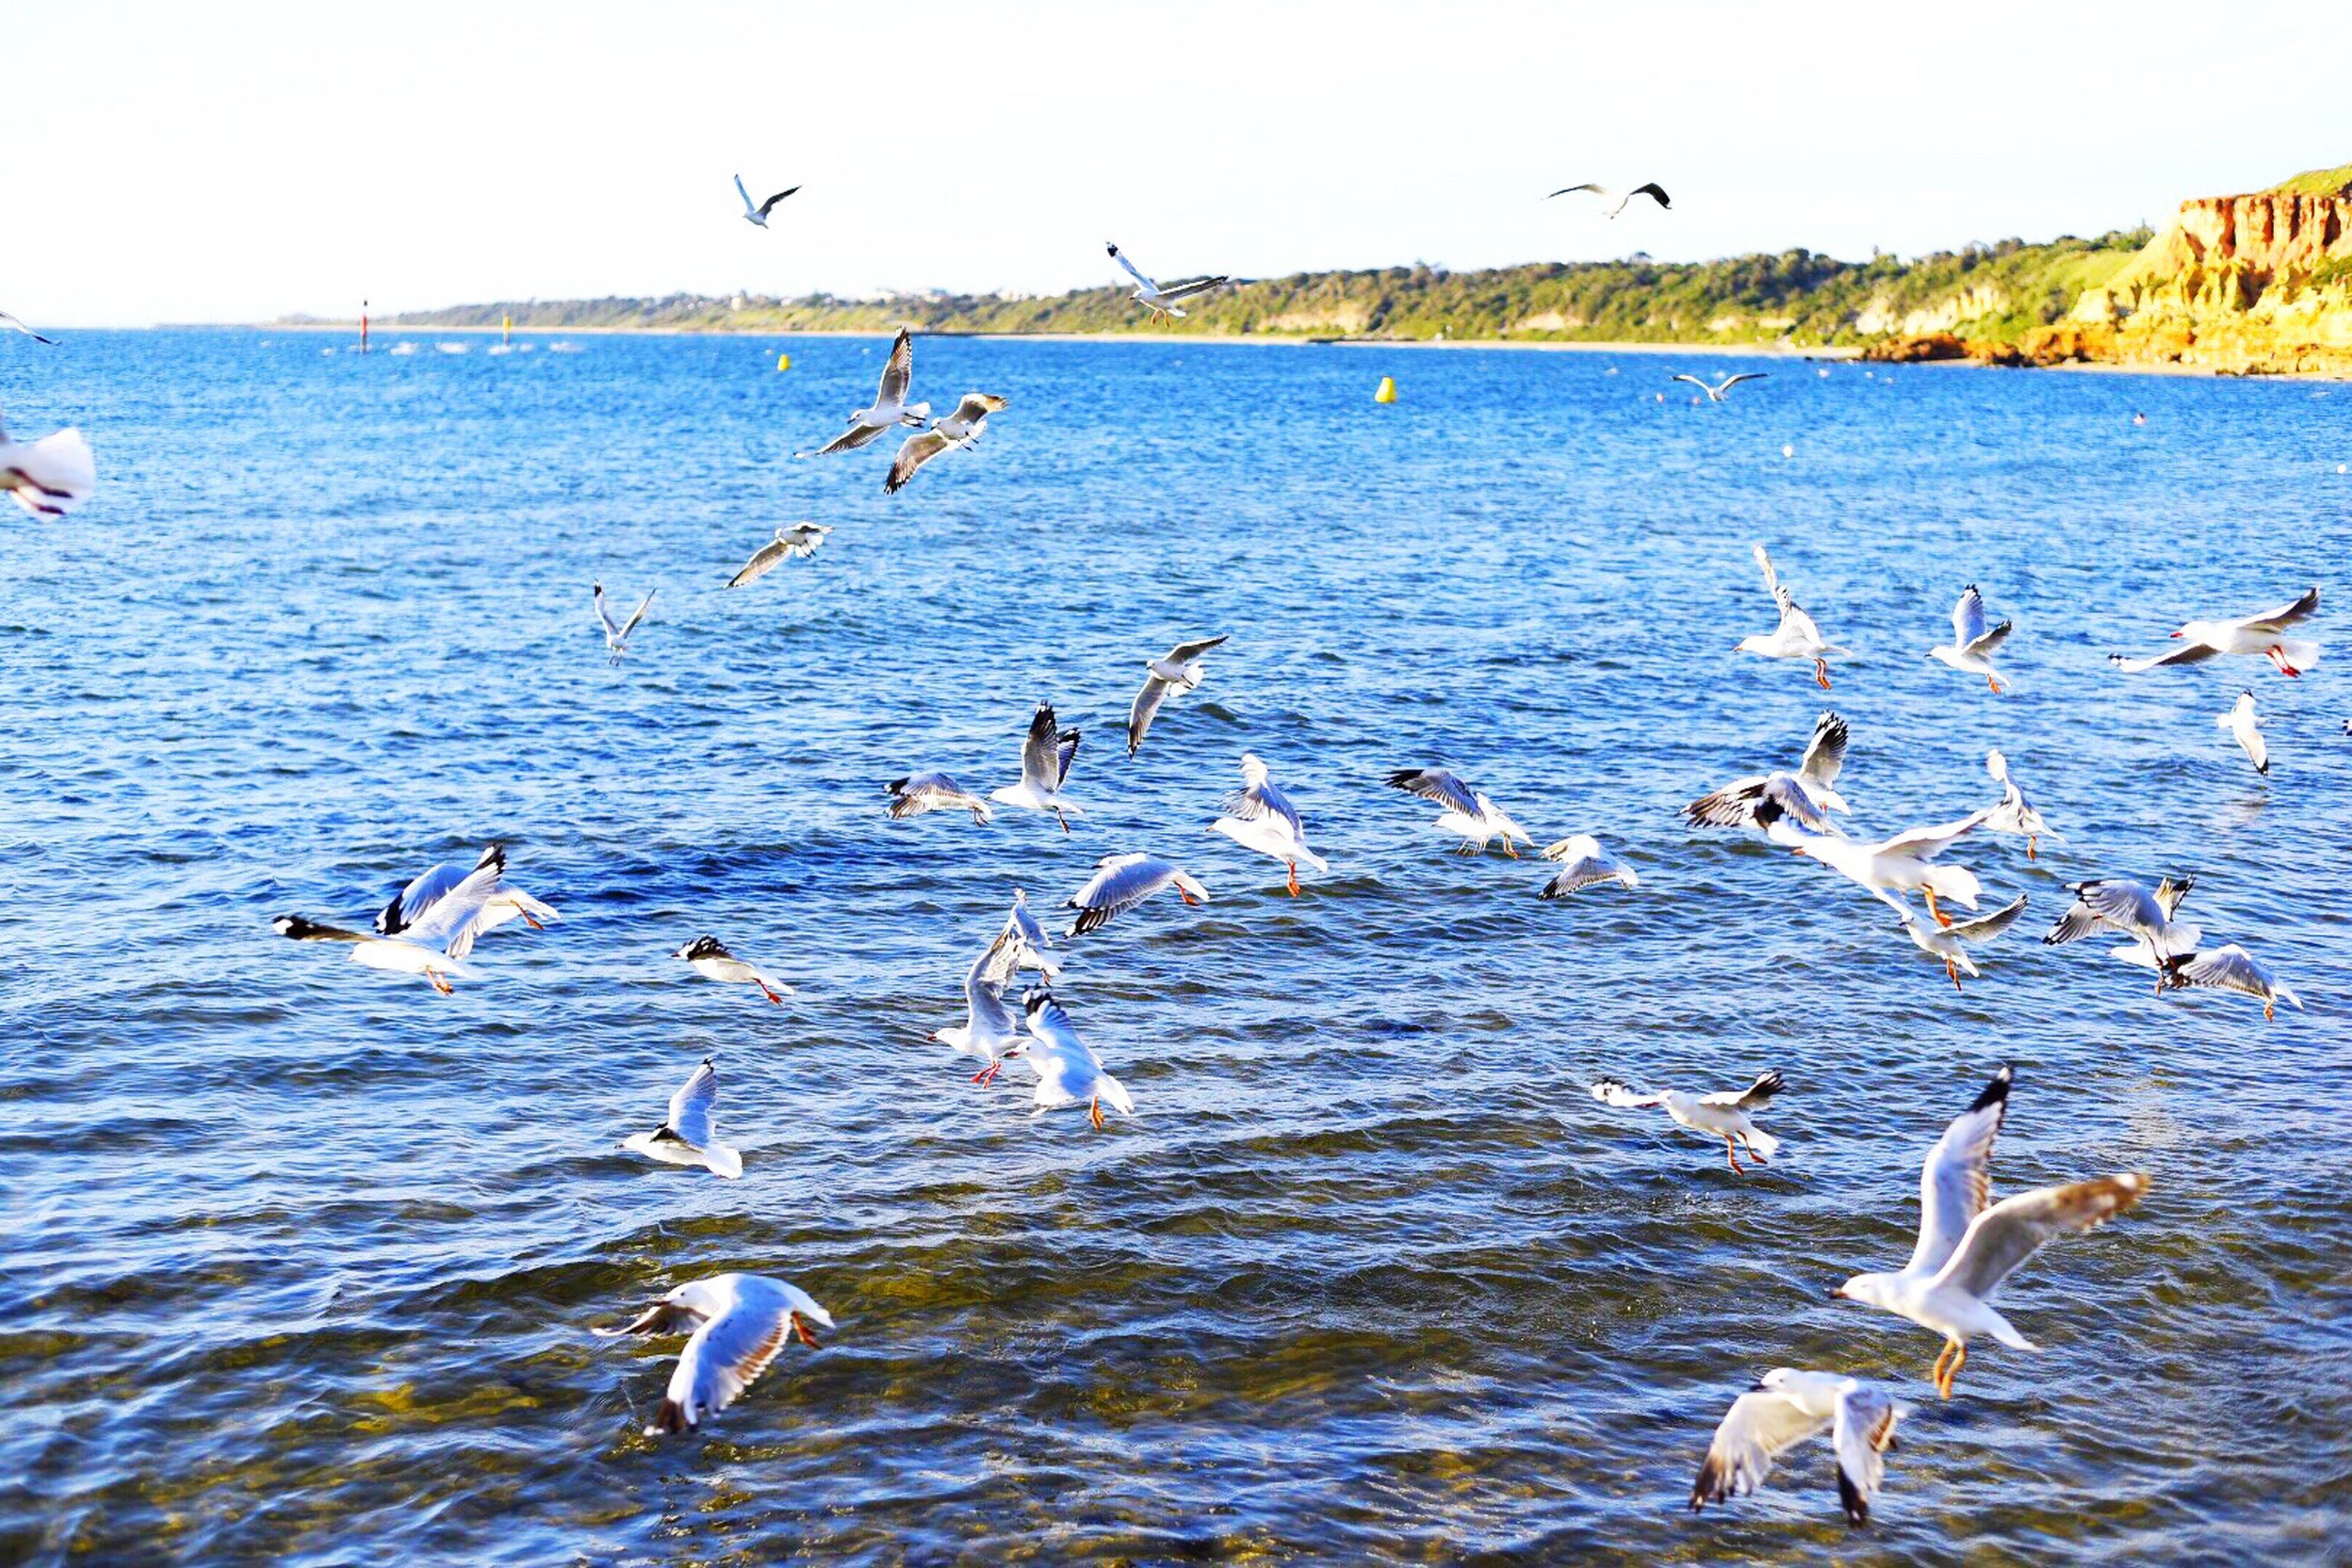 bird, animals in the wild, animal themes, flying, water, wildlife, sea, seagull, flock of birds, spread wings, nature, waterfront, beauty in nature, mid-air, medium group of animals, tranquility, sky, scenics, tranquil scene